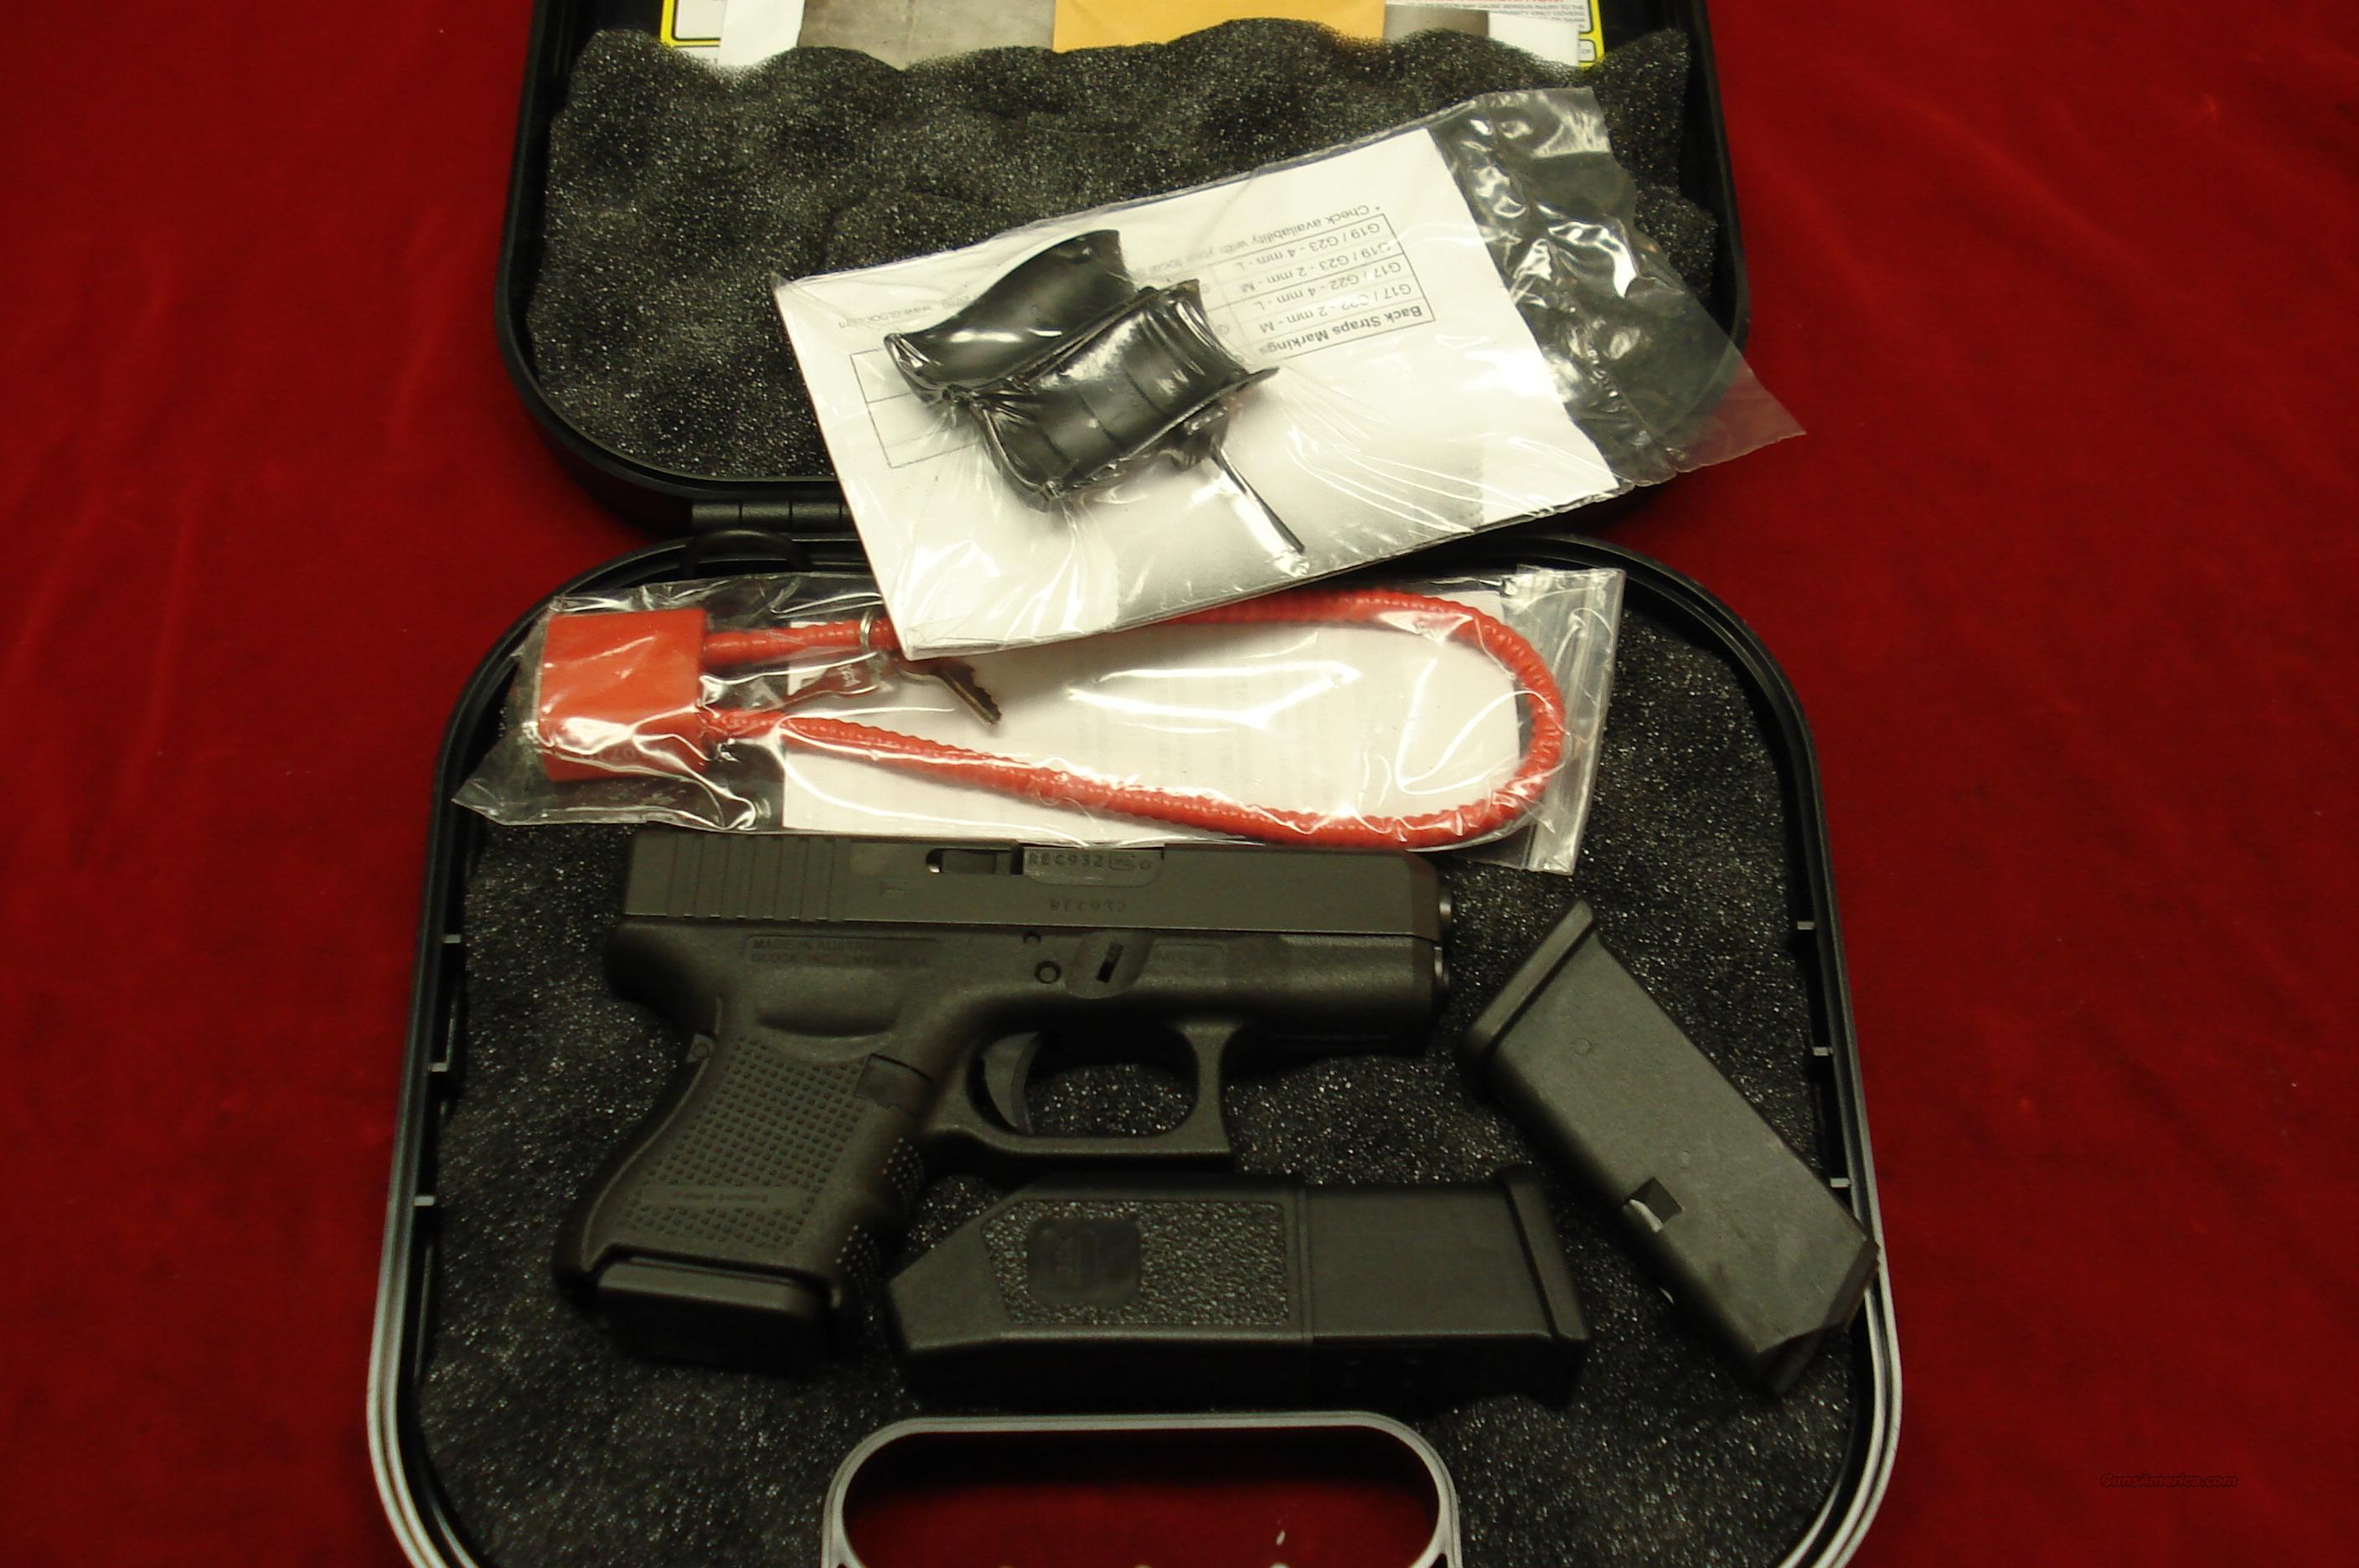 GLOCK MODEL 27 GENERATION 4 .40 CAL. WITH 3 MAGAZINES NEW   Guns > Pistols > Glock Pistols > 26/27